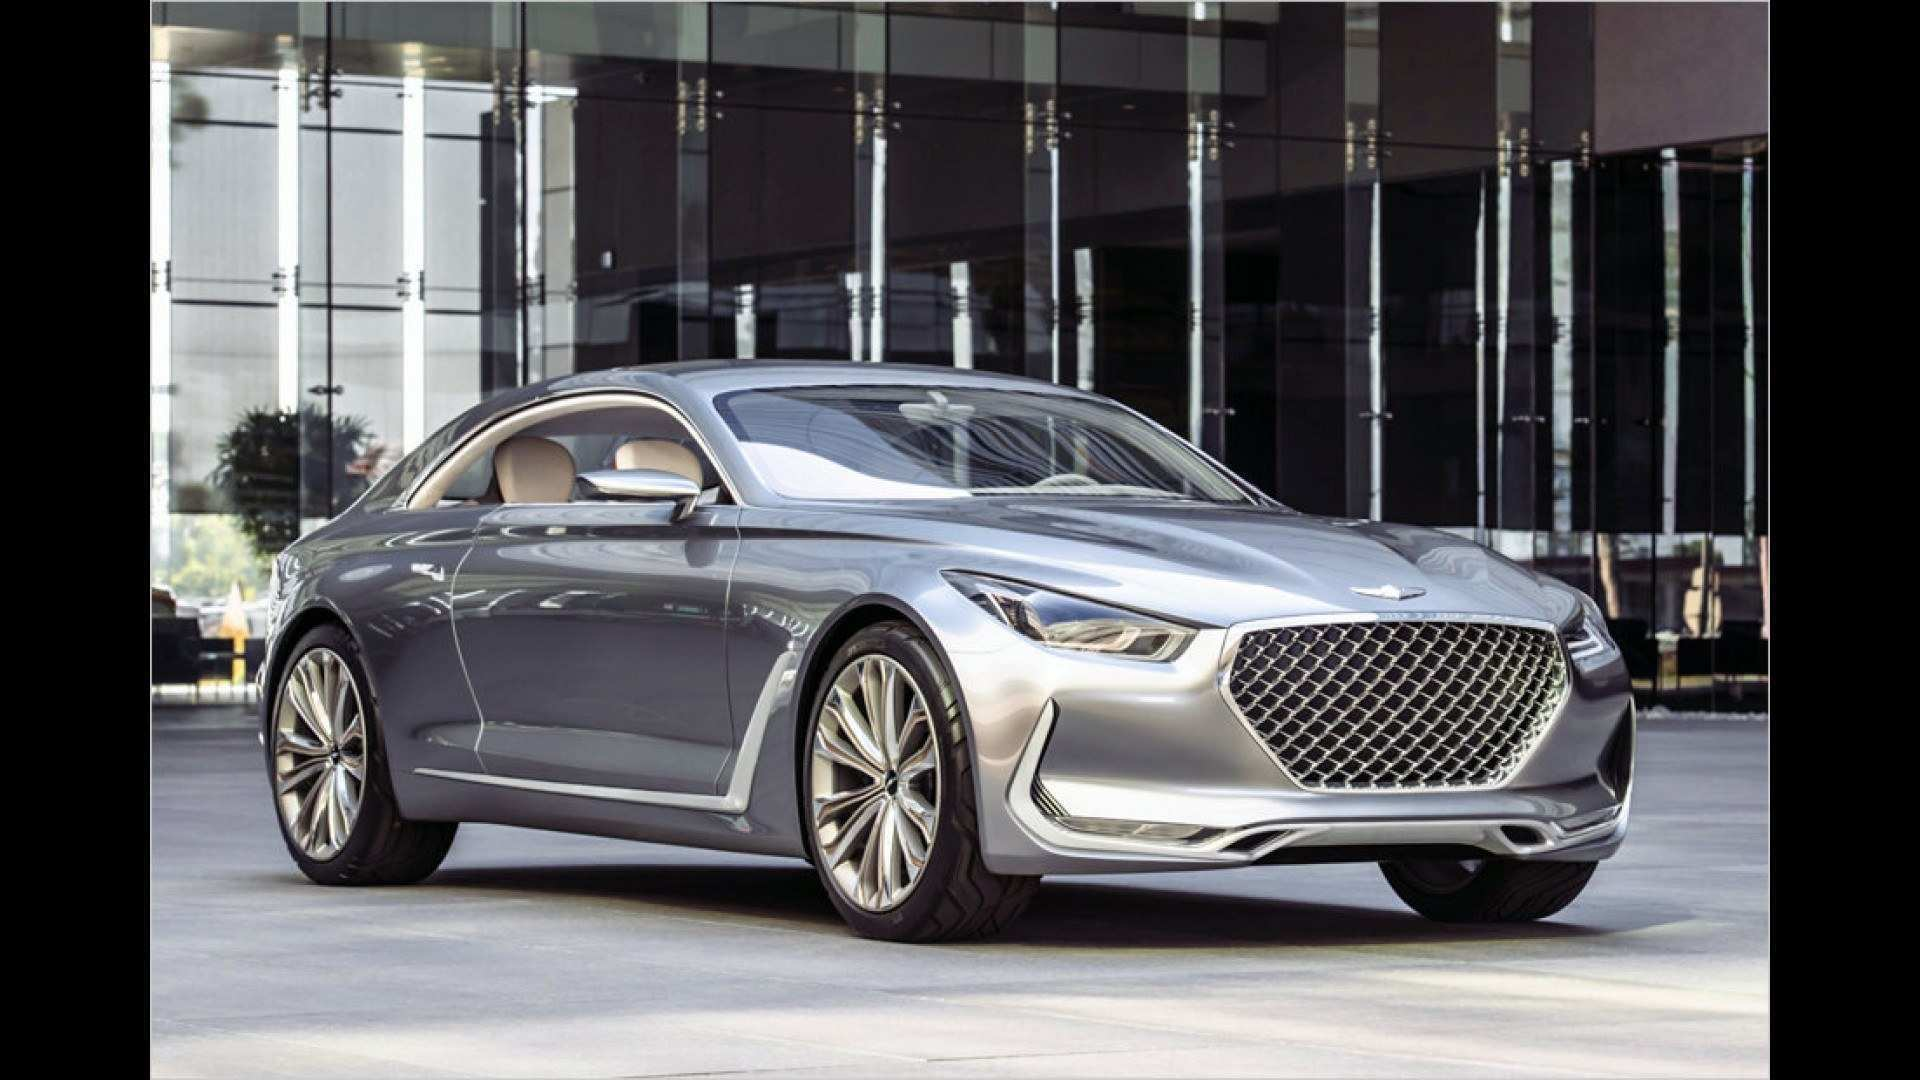 31 New 2020 Hyundai Coupe Redesign for 2020 Hyundai Coupe